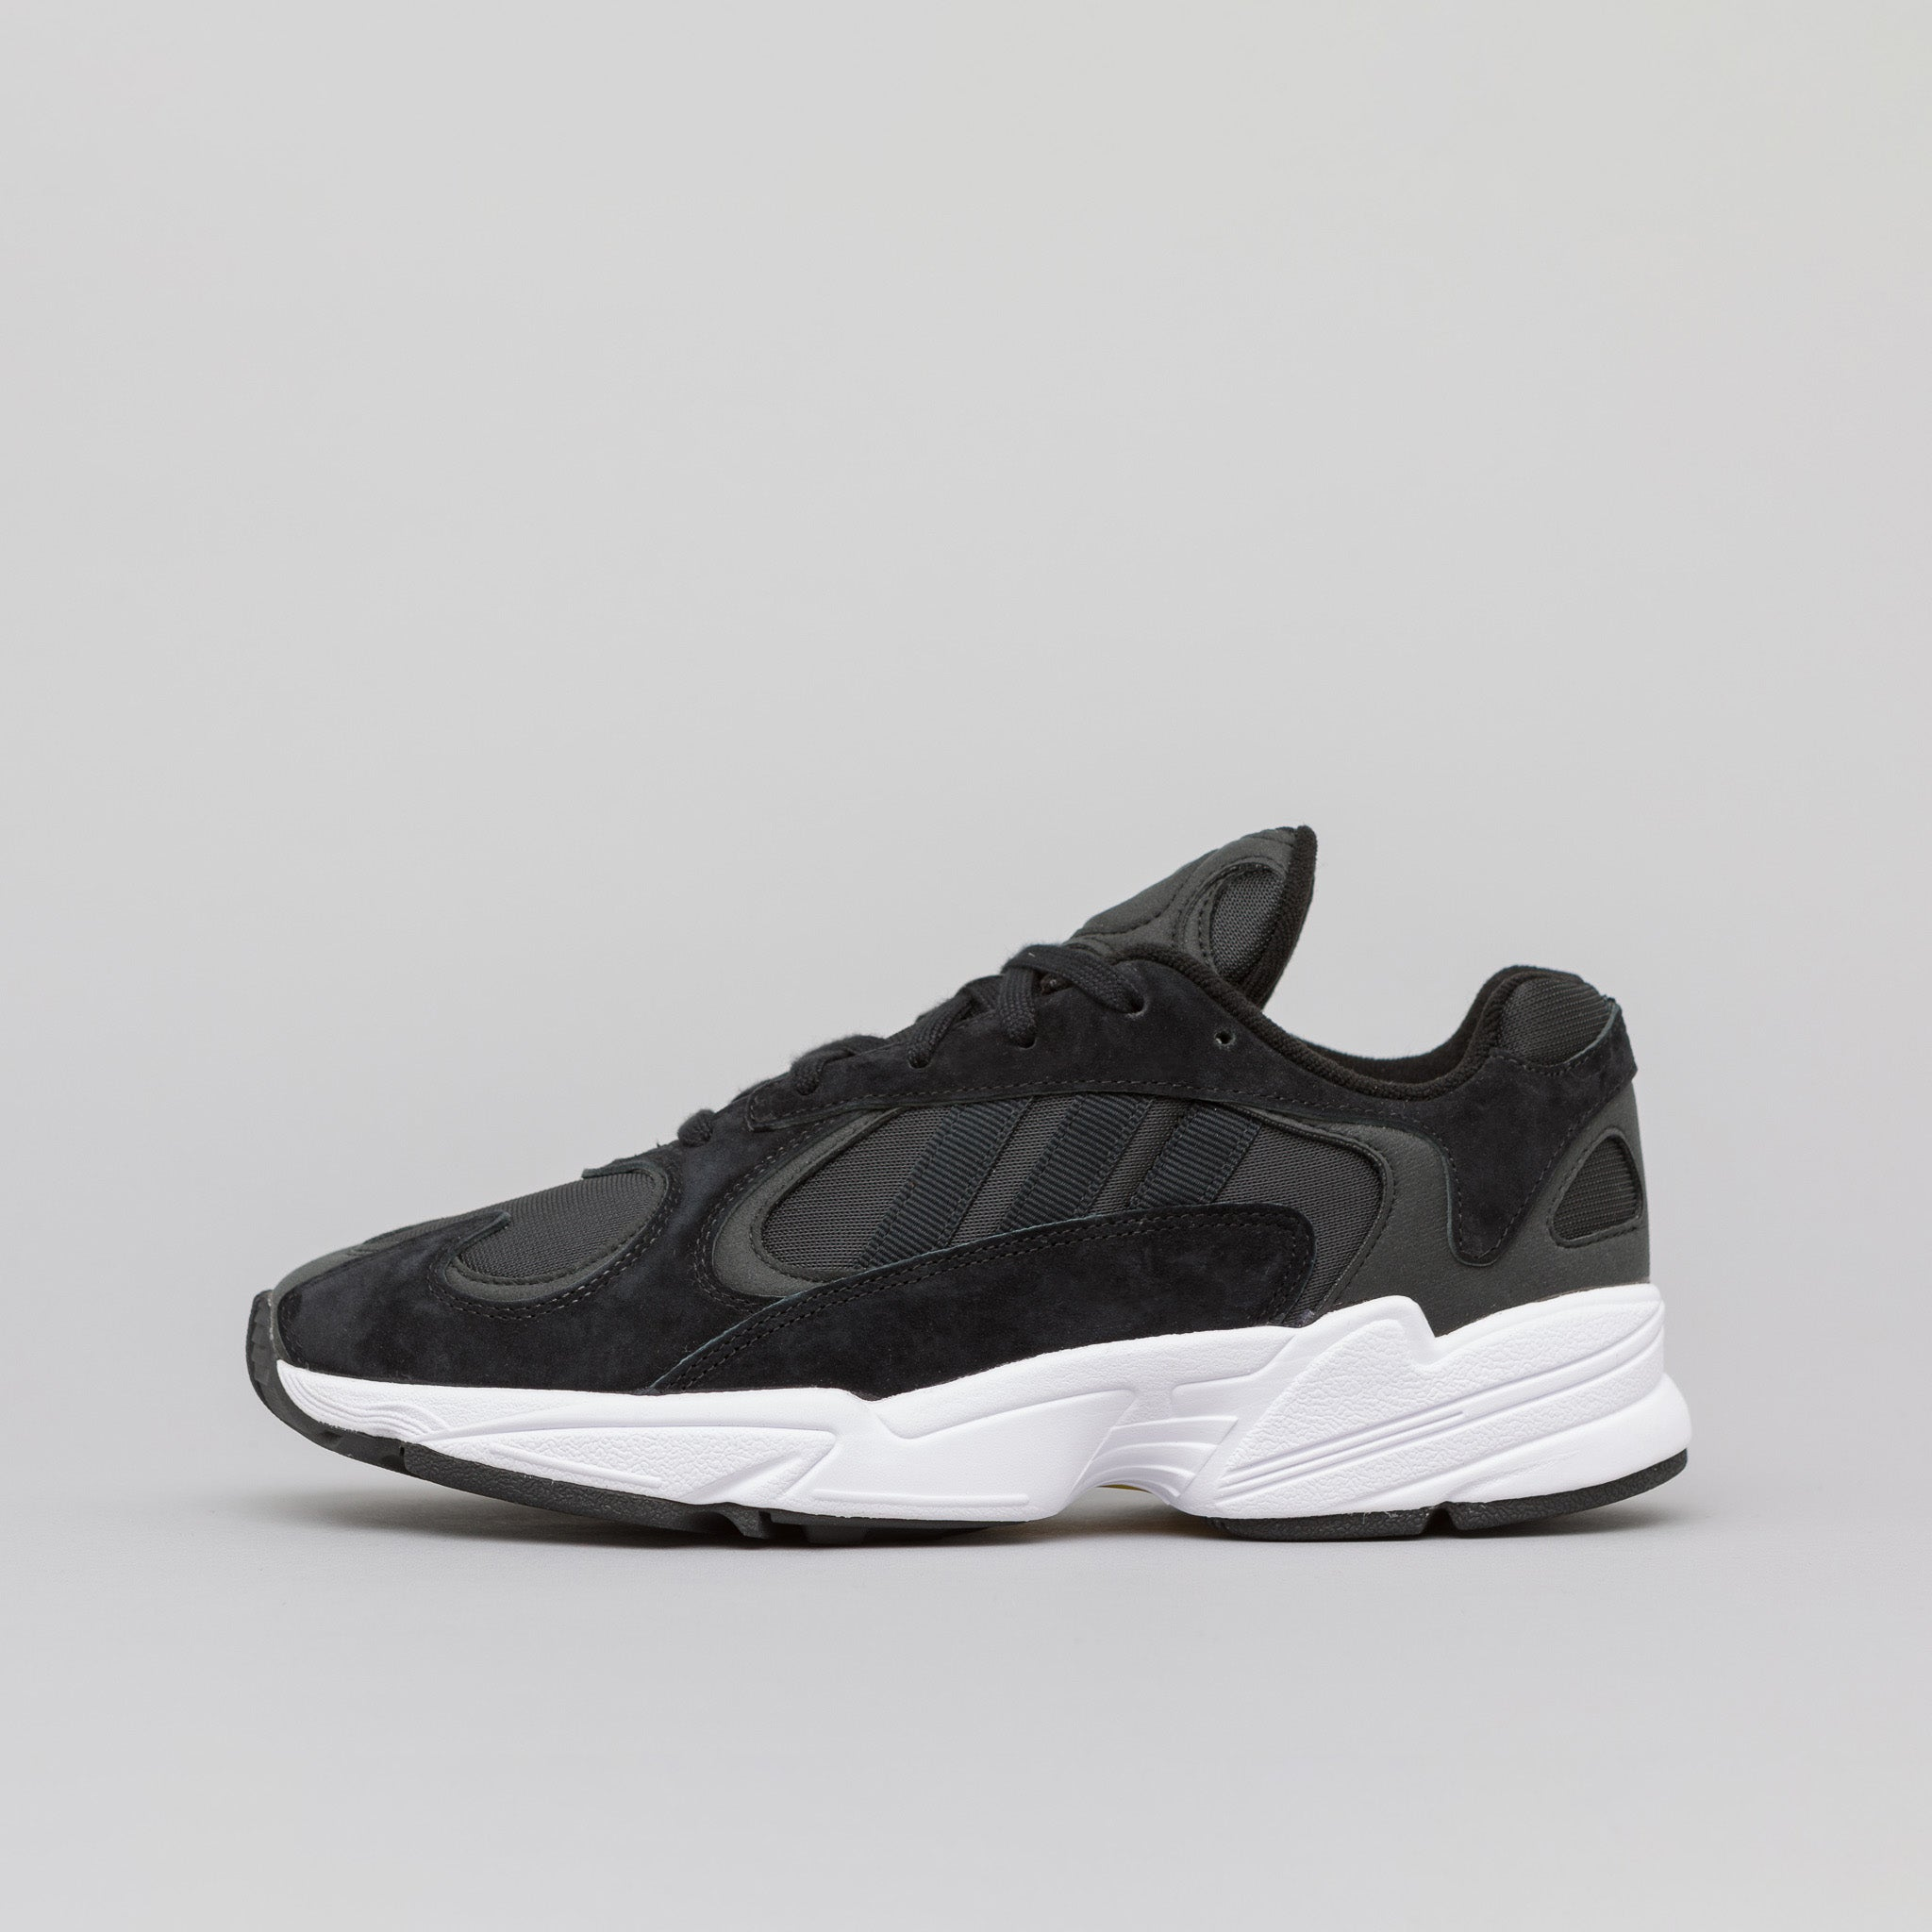 Yung-1 in Core Black/White